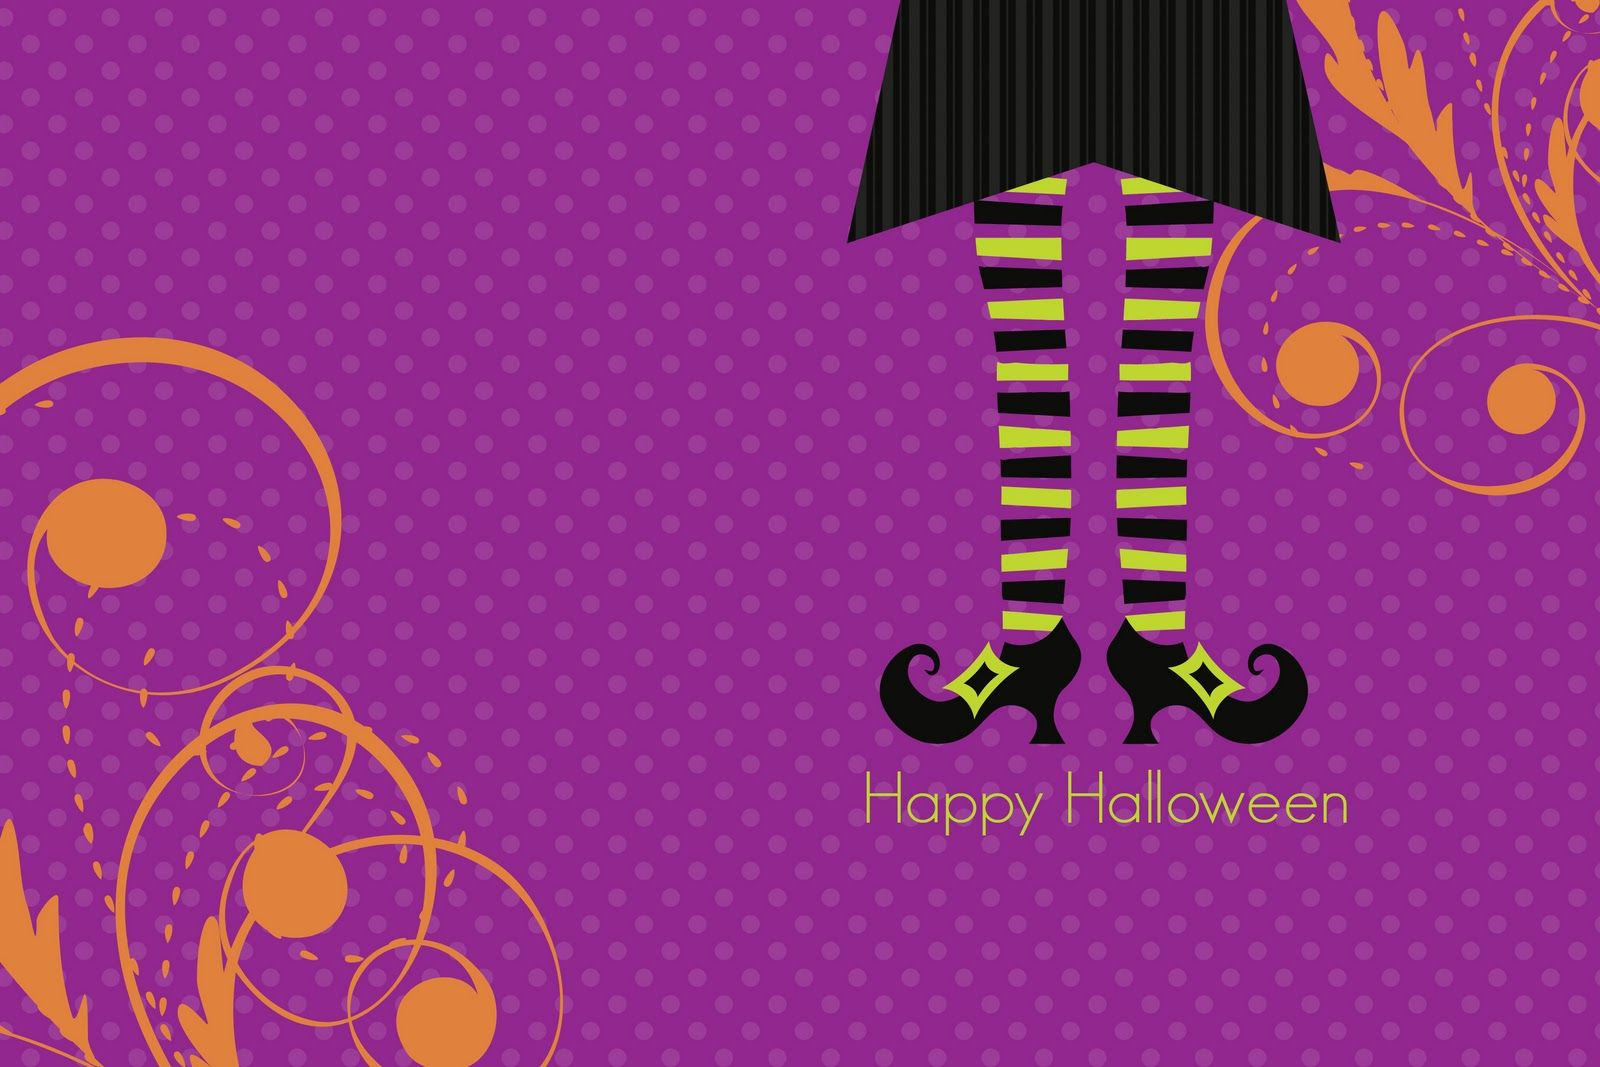 Free Halloween Desktop Wallpaper With Images Halloween Desktop Wallpaper Halloween Wallpaper Halloween Backgrounds